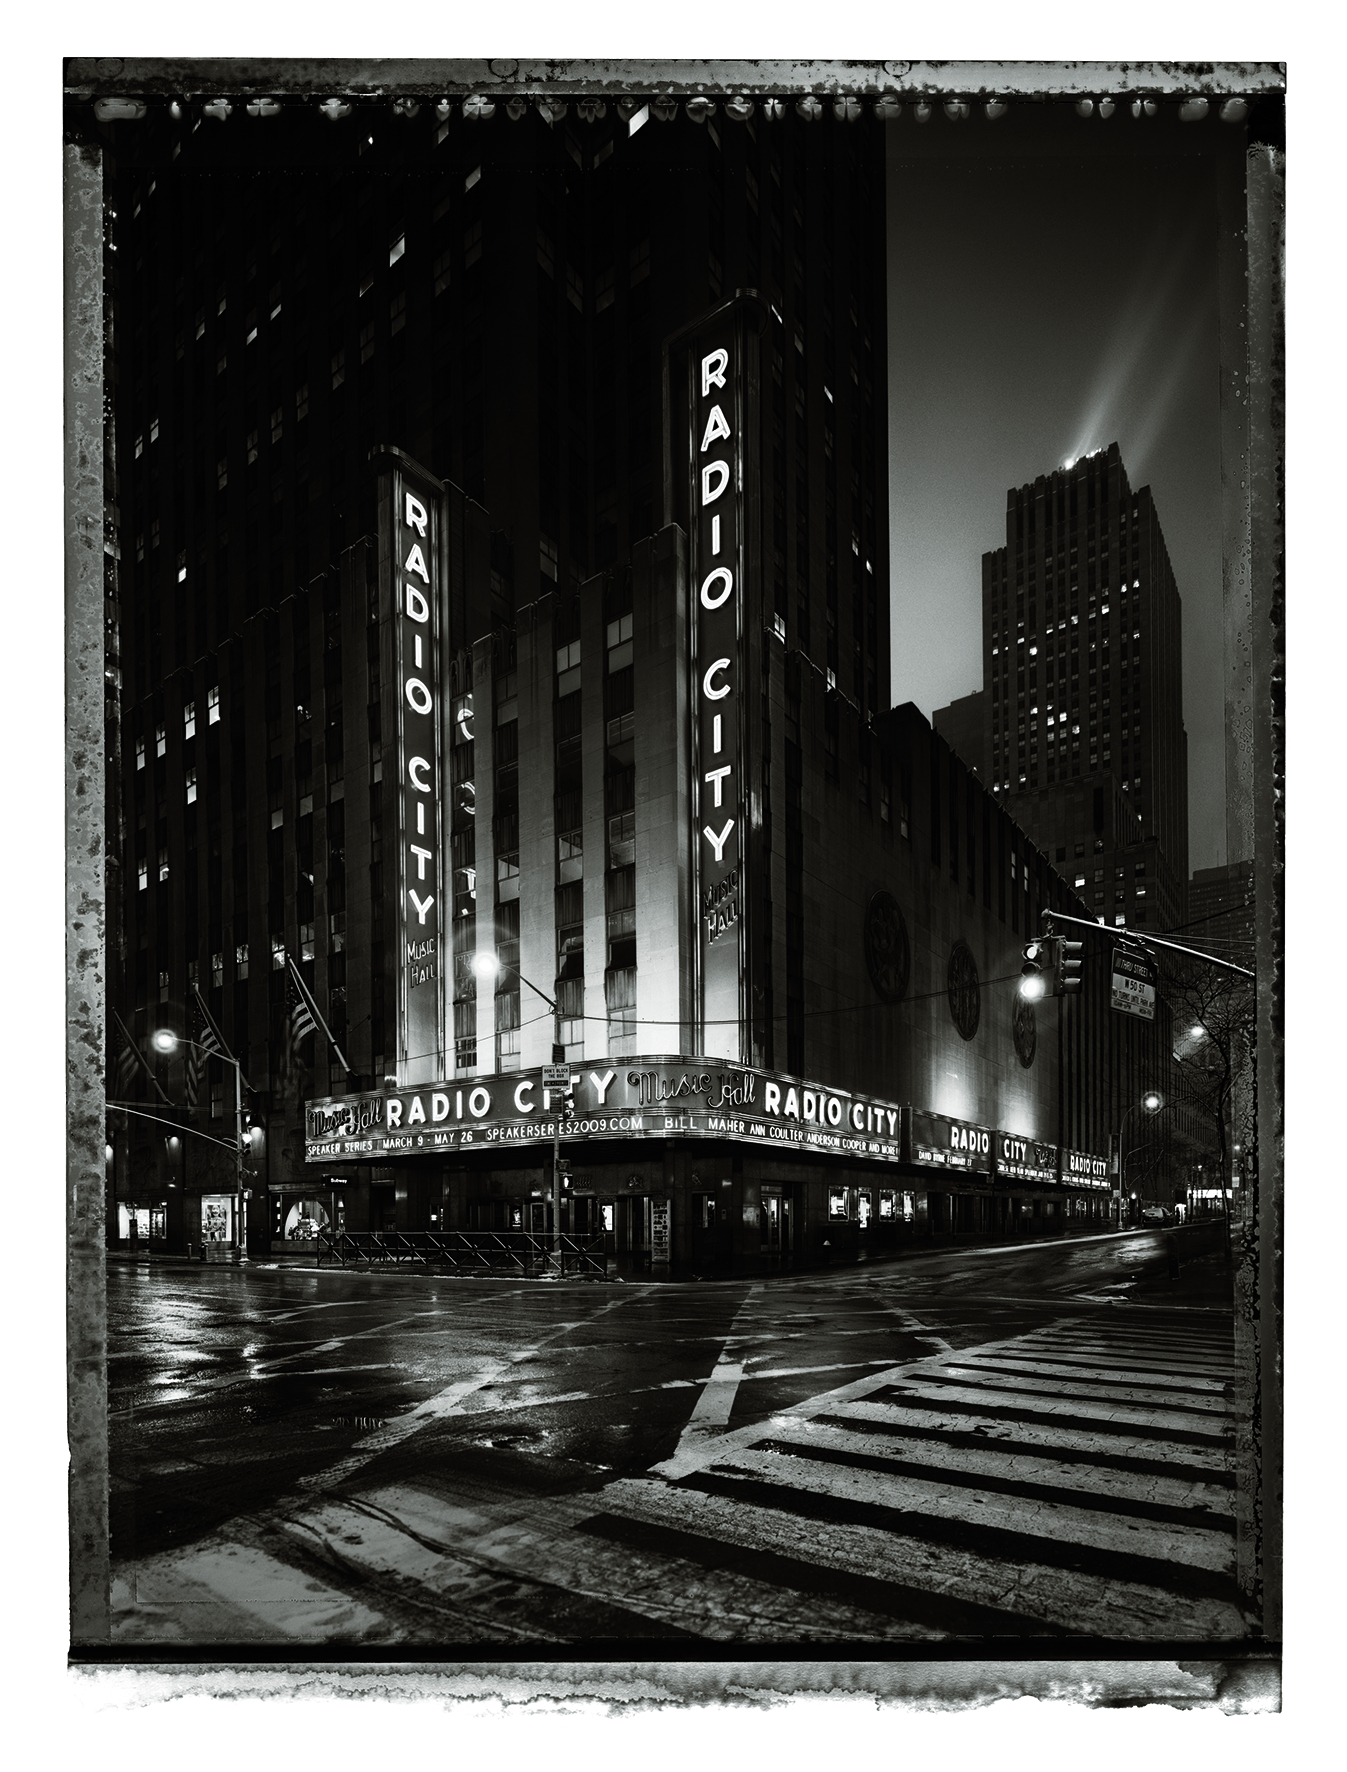 Radio City Music Hall - (c) Christopher Thomas